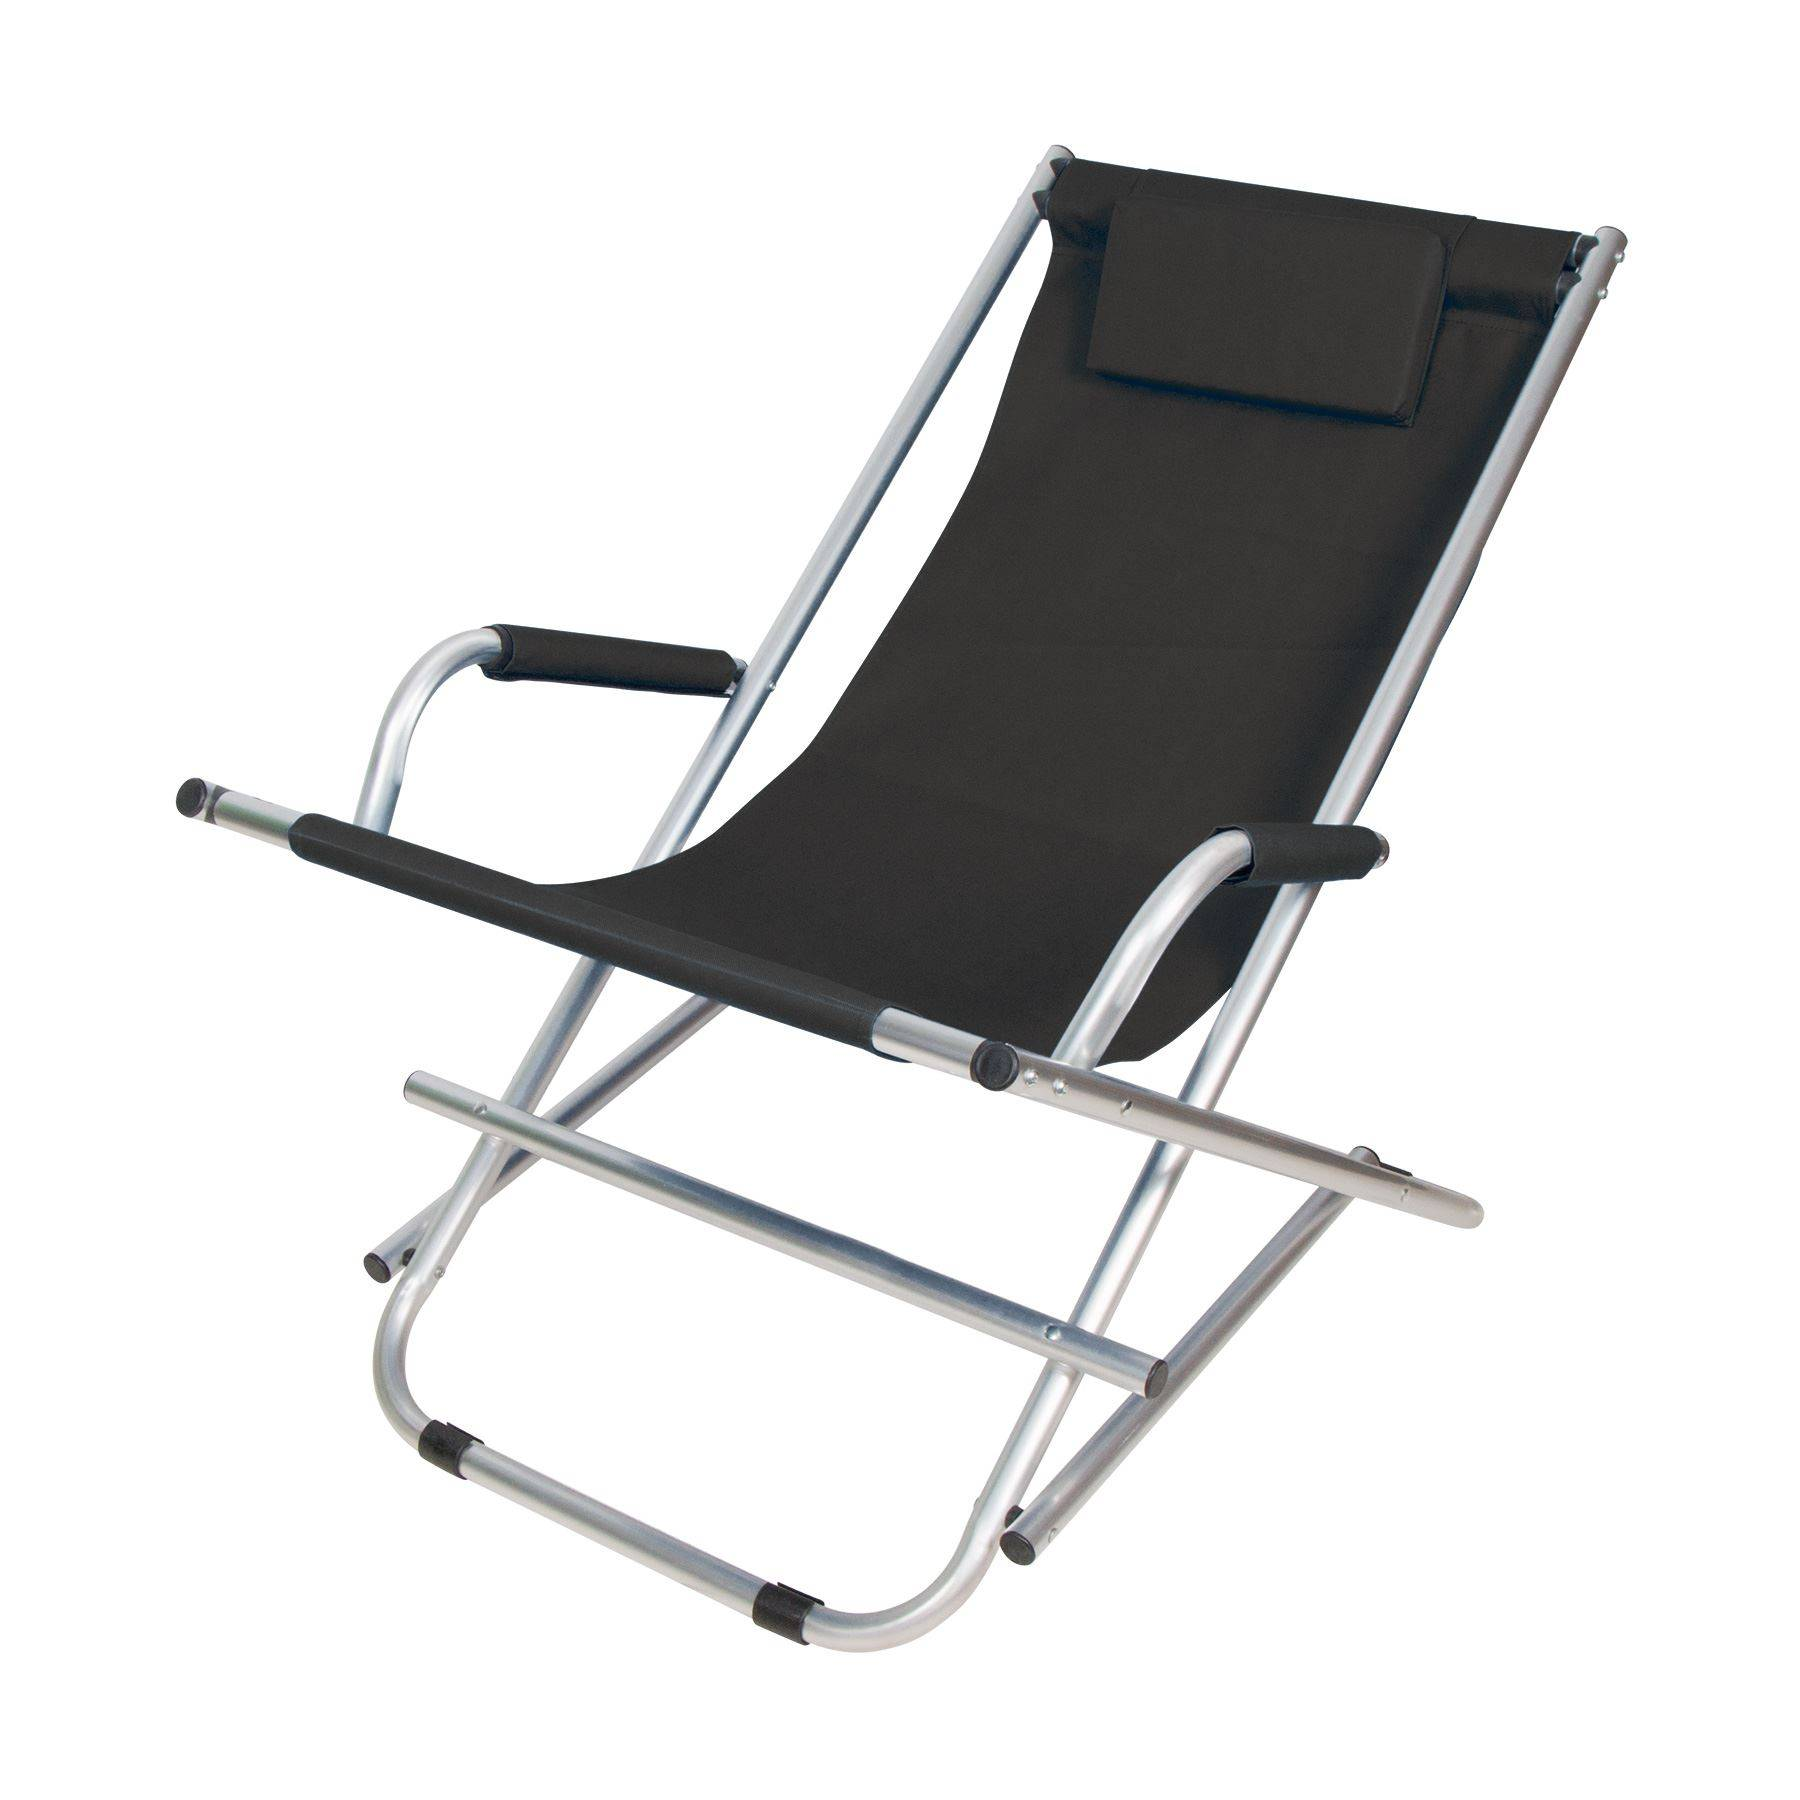 Dura Tech Easy Lounger Chair in Stall Drapes Chairs at Schneider